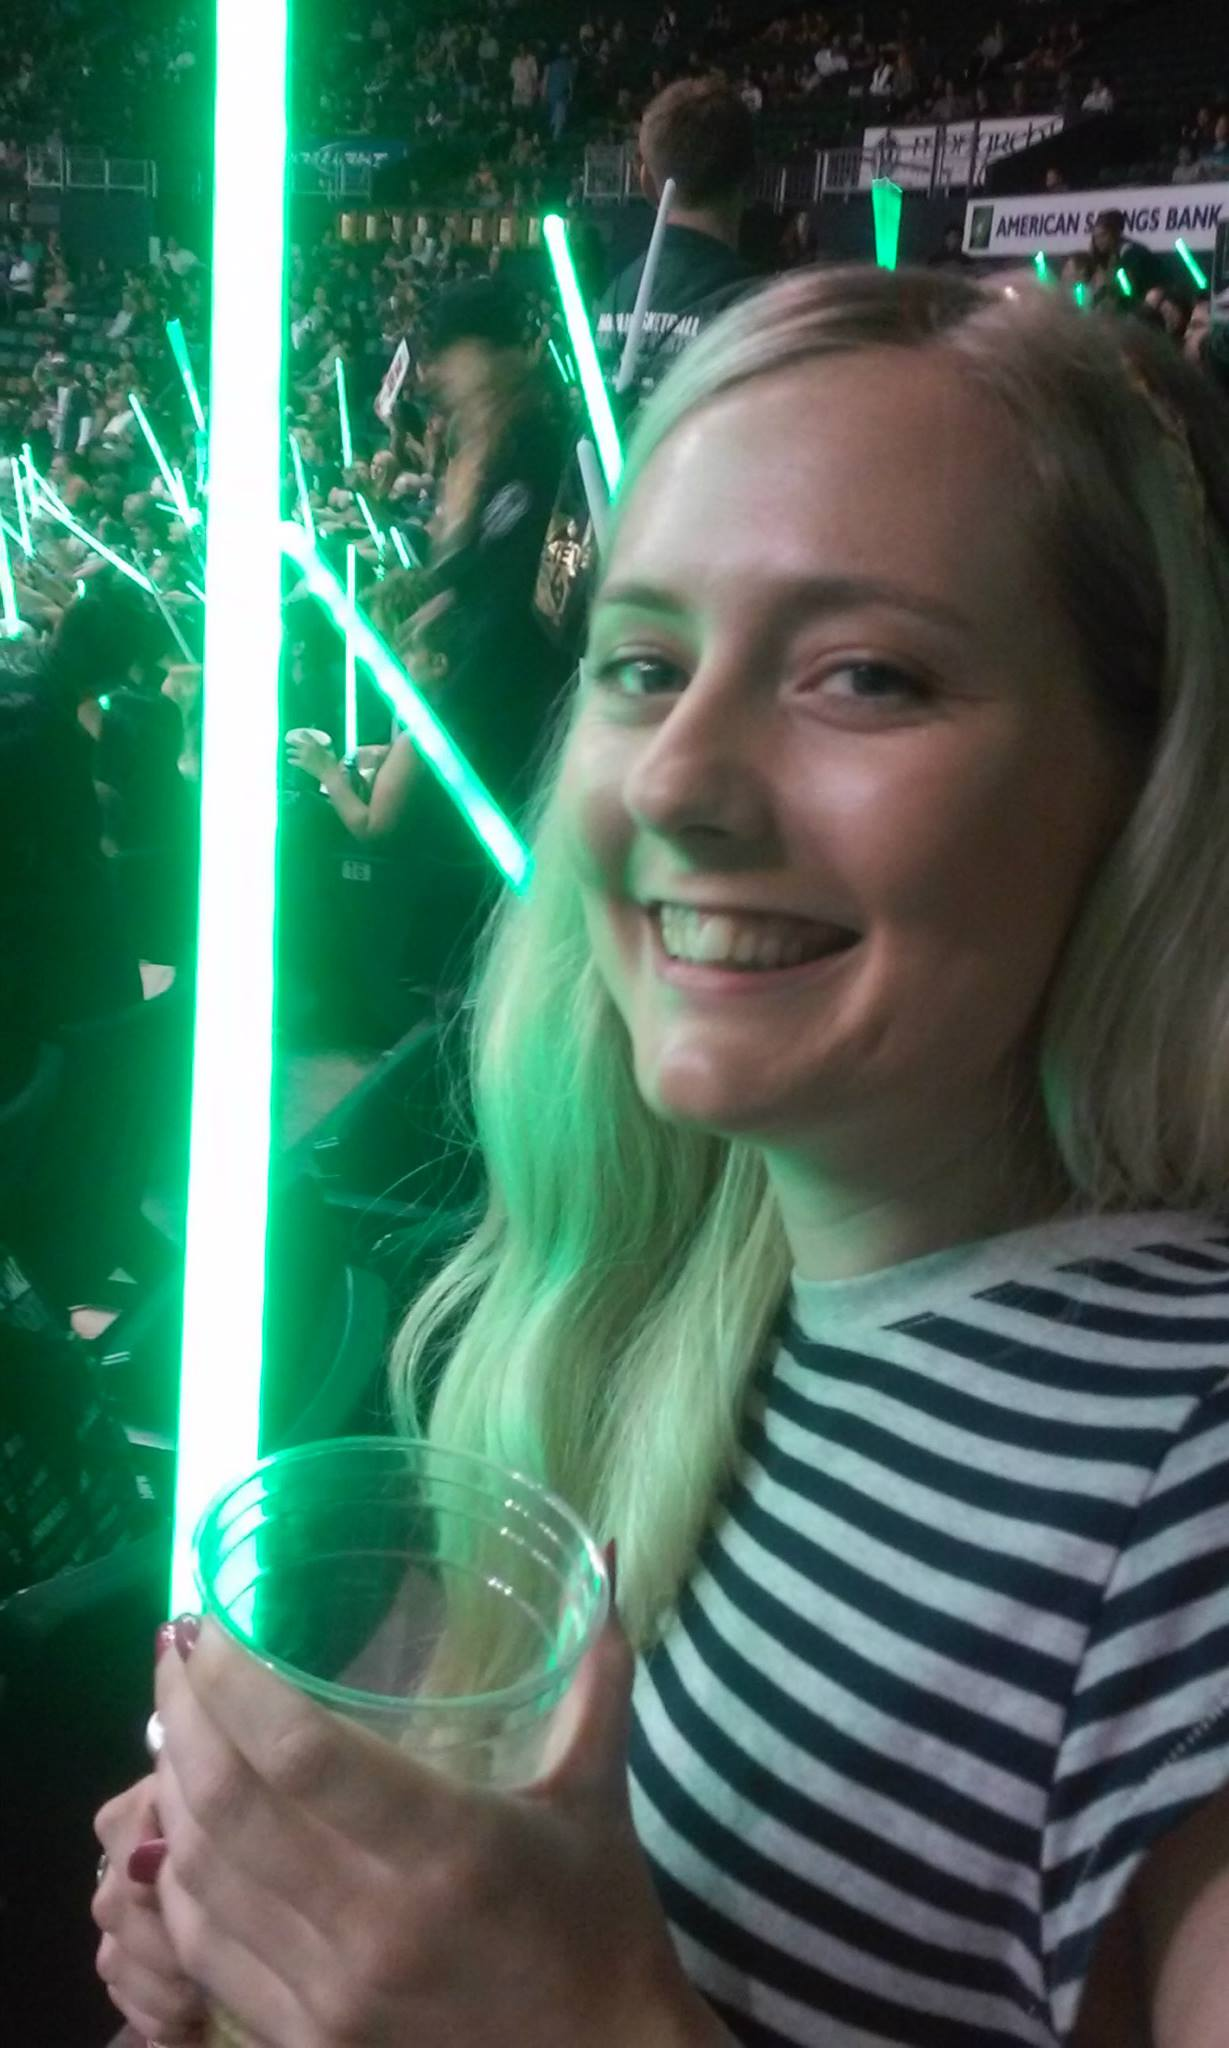 Ellen Singleton holding lightsaber at basketball game